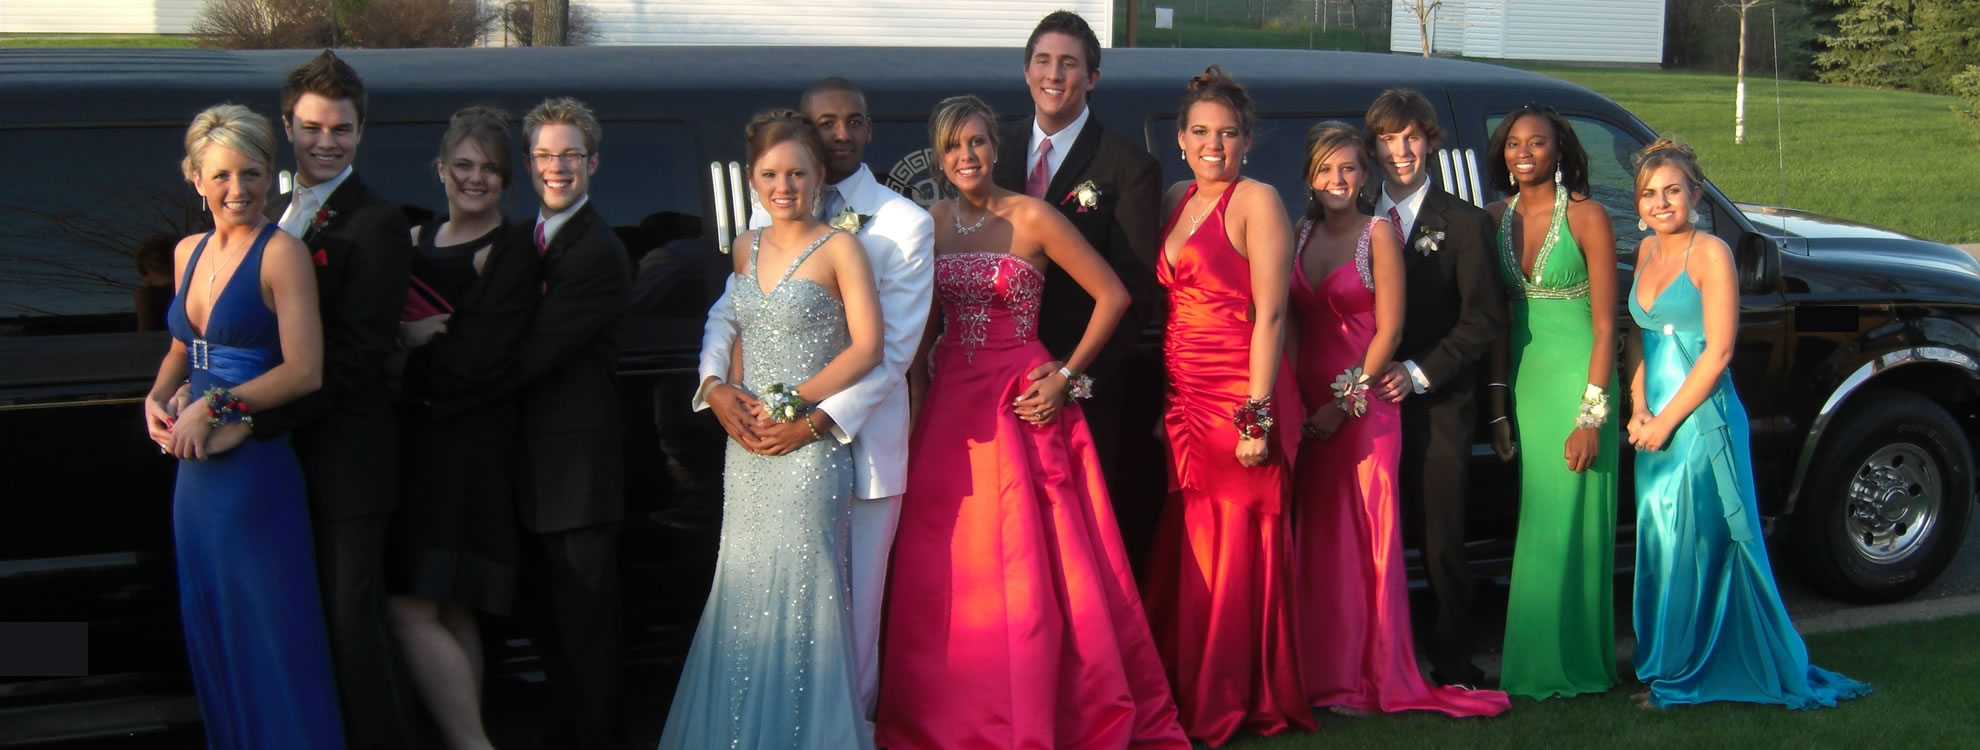 School Prom Car Prom Limo Hire From Limousines In London